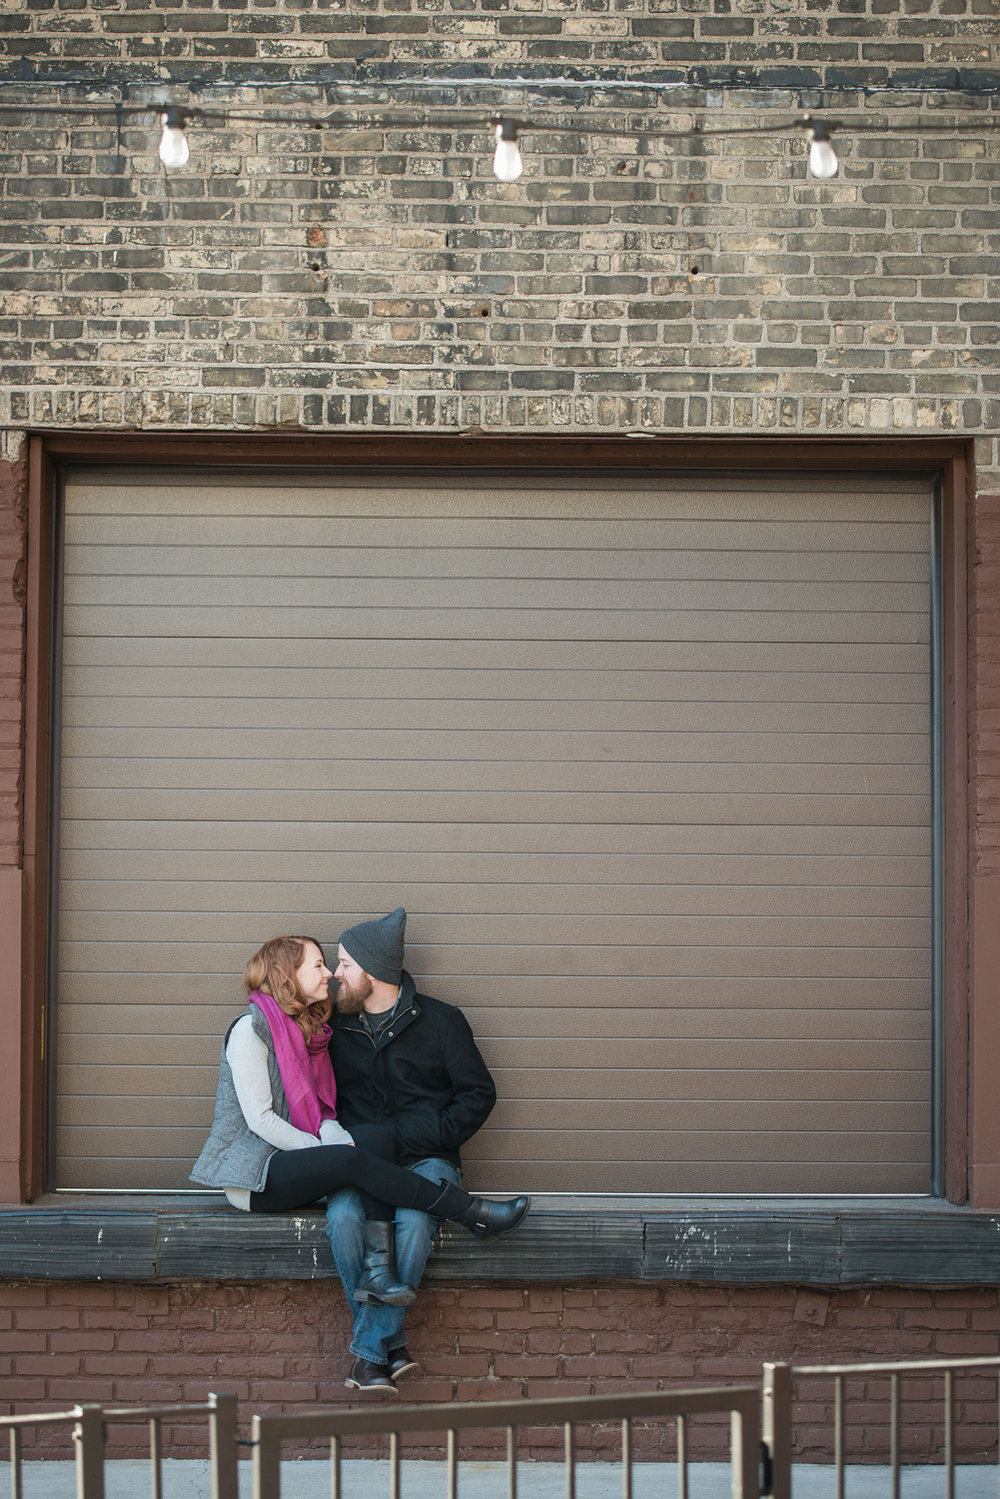 the loading dock at Indeed Brewing Company in Minneapolis served as a bench for this engagement photo session